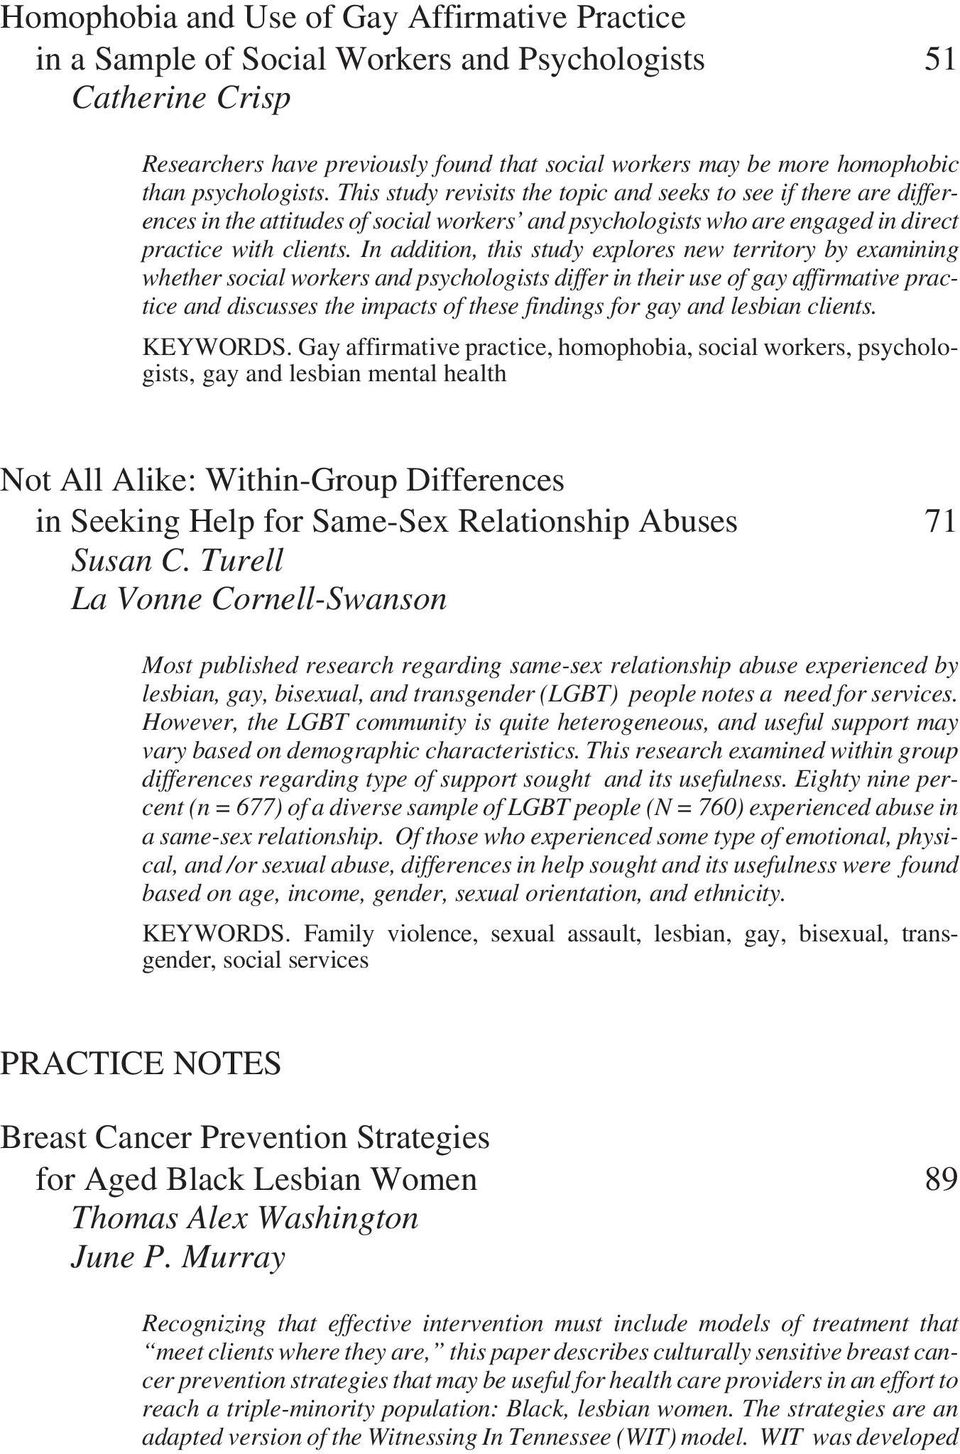 In addition, this study explores new territory by examining whether social workers and psychologists differ in their use of gay affirmative practice and discusses the impacts of these findings for